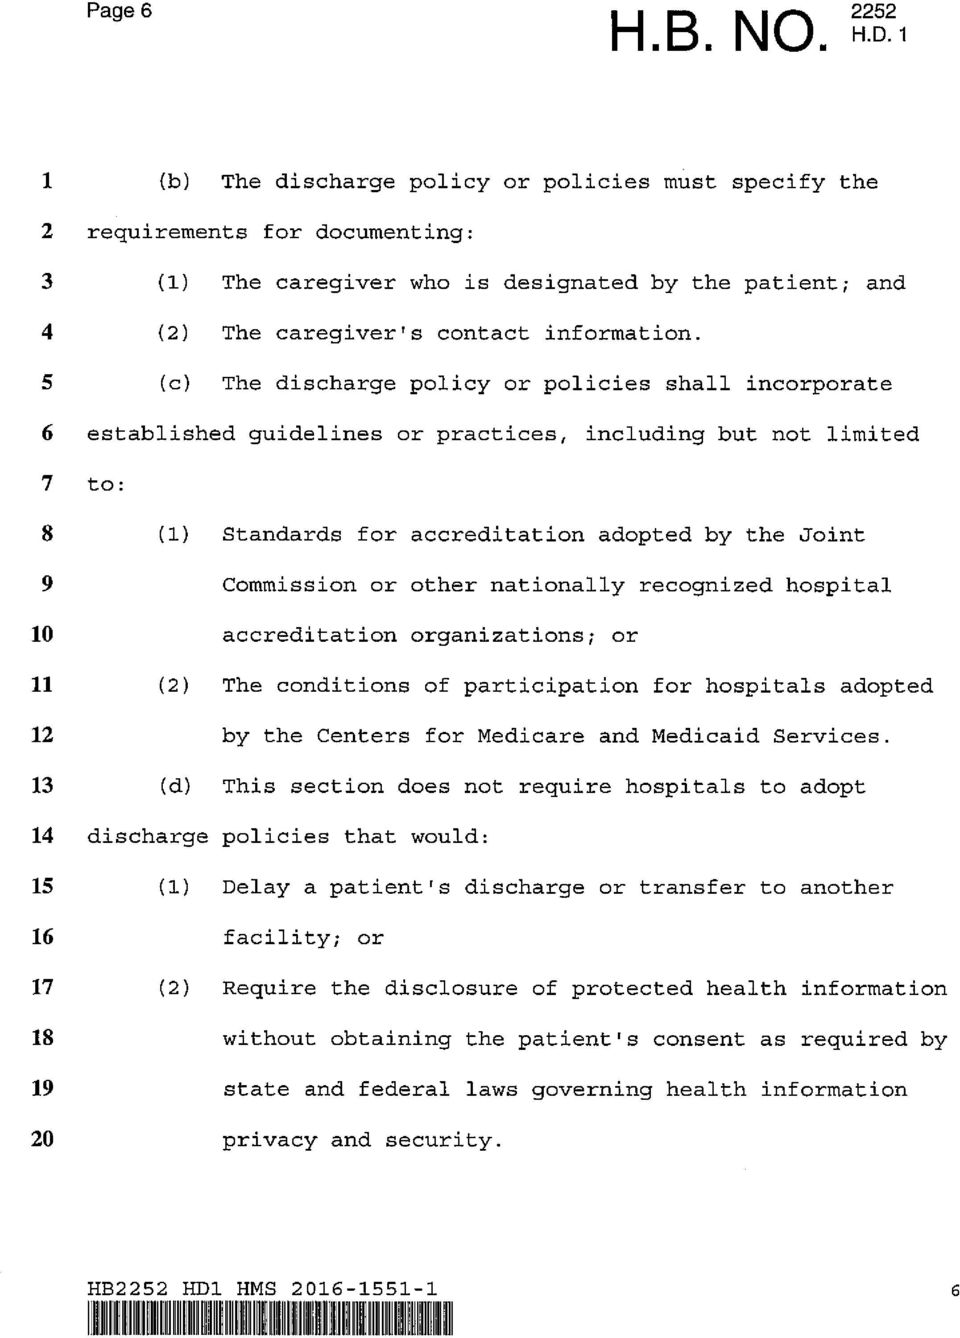 5 (c) The discharge policy or policies shall incorporate 6 established guidelines or practices, including but not limited 7 to: 8 (1) Standards for accreditation adopted by the Joint 9 Commission or